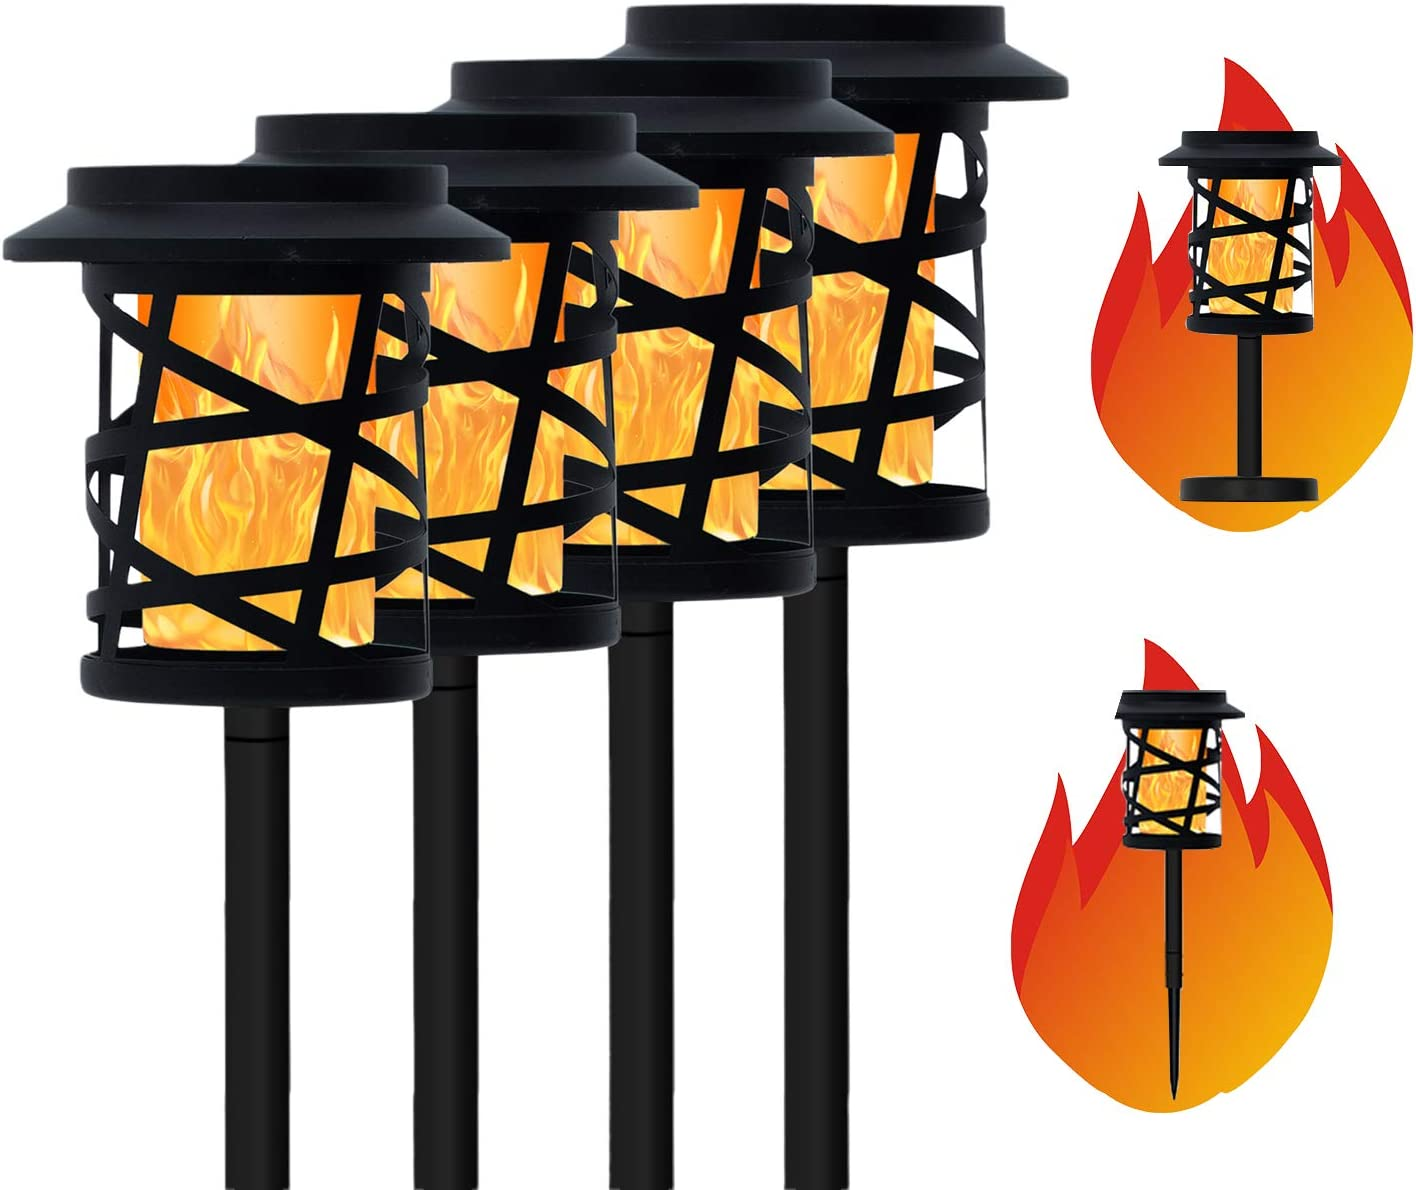 CHARMELEON Outdoor Solar Flame Torch Lights 4 Pack, Waterproof Led Solar Flickering Frame Torch, Dual-use Patio Torches for Garden and Driveway